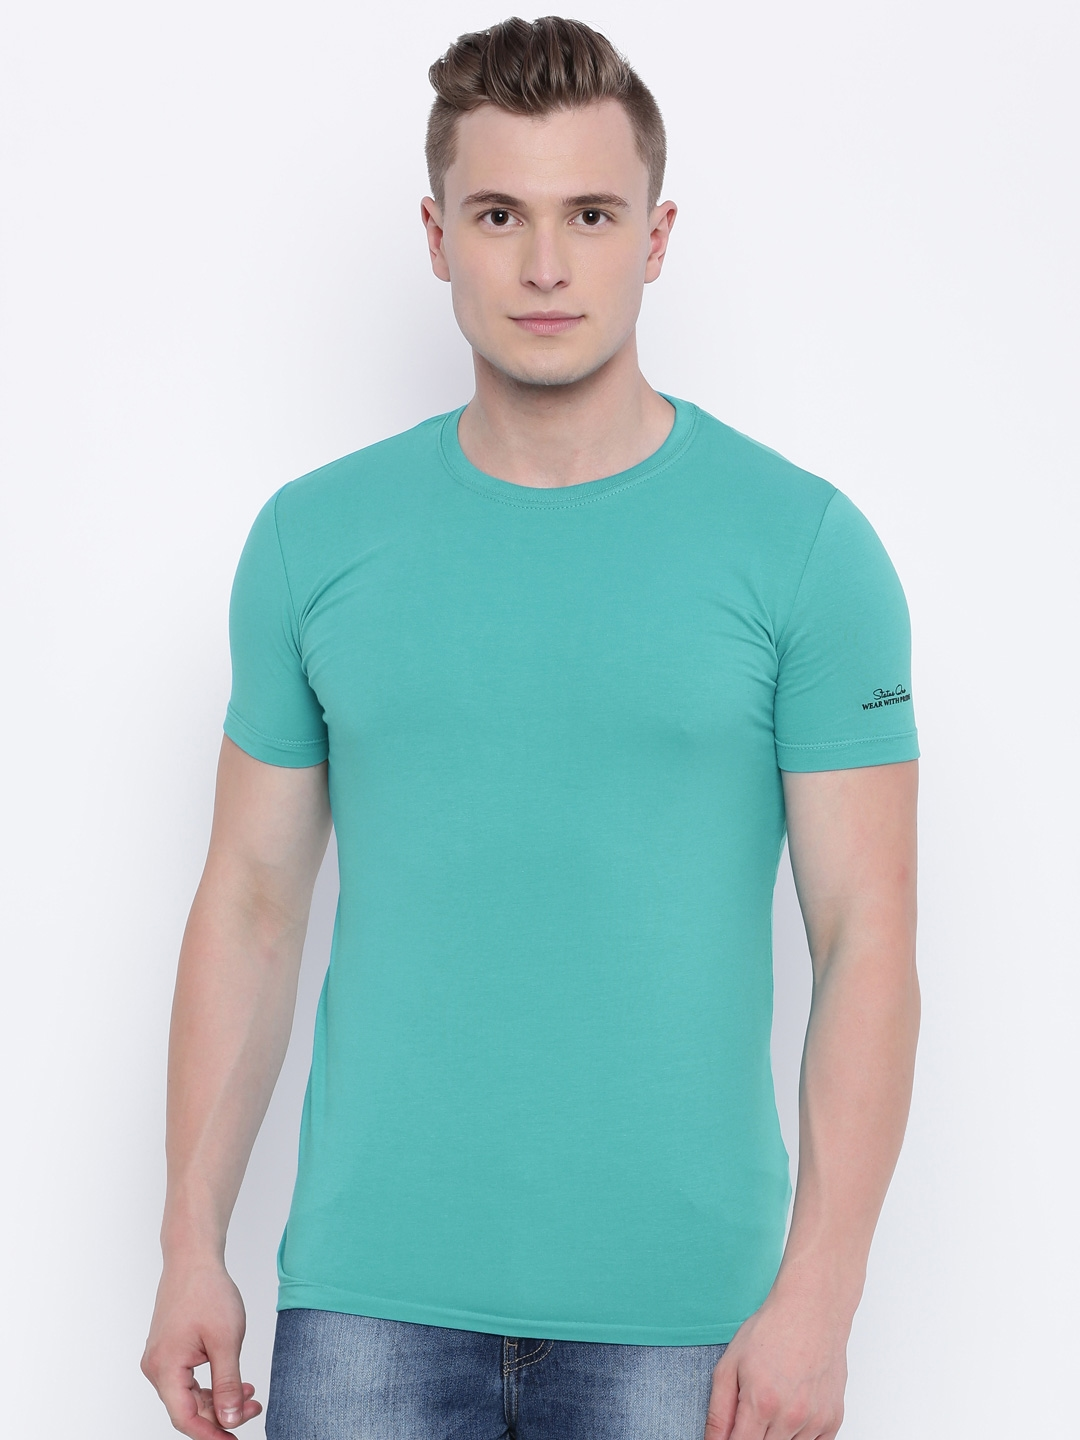 a89ca3b160f12e Buy Status Quo Turquoise Blue T Shirt - Tshirts for Men 1909134